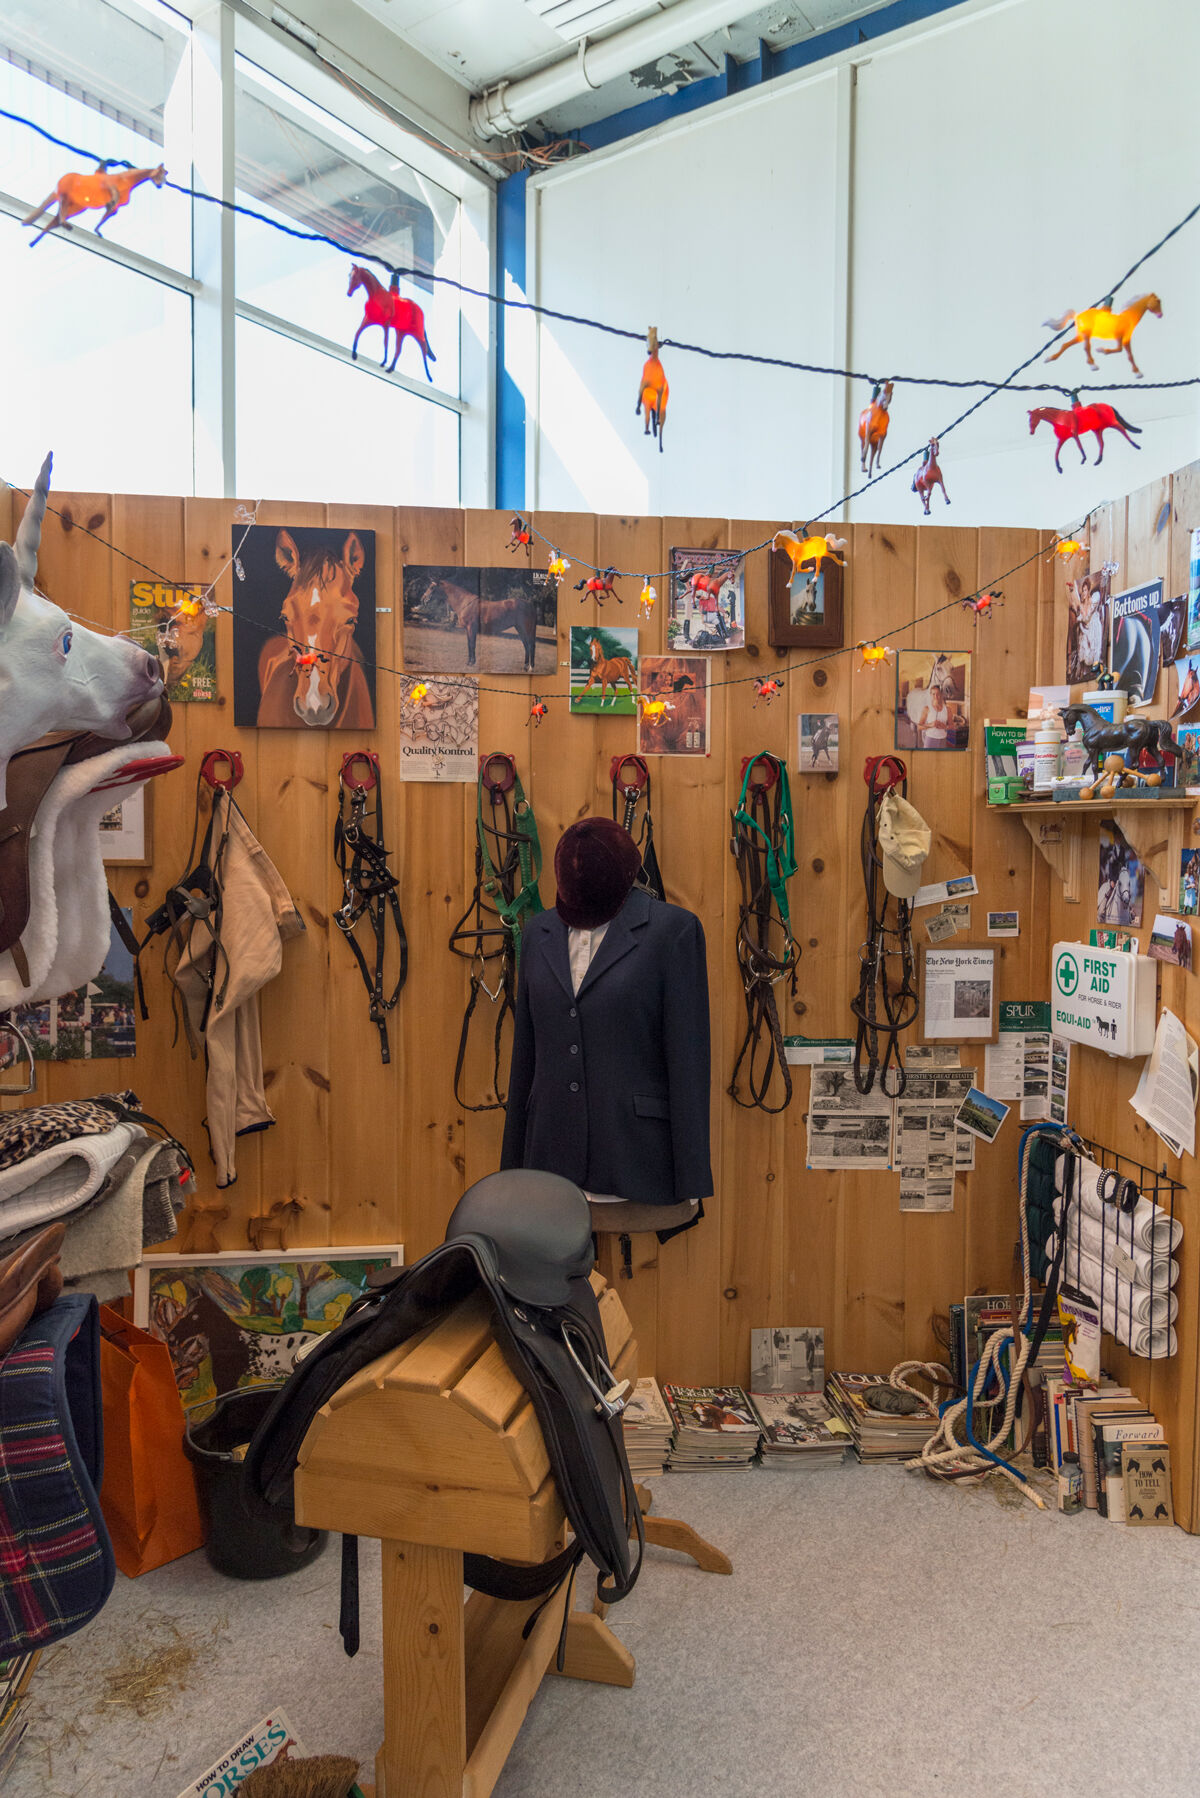 Installation view of Patricia Cronin,Tack Room, 1997–98, at The Armory Show, 2017. Photo by Adam Reich for Artsy.